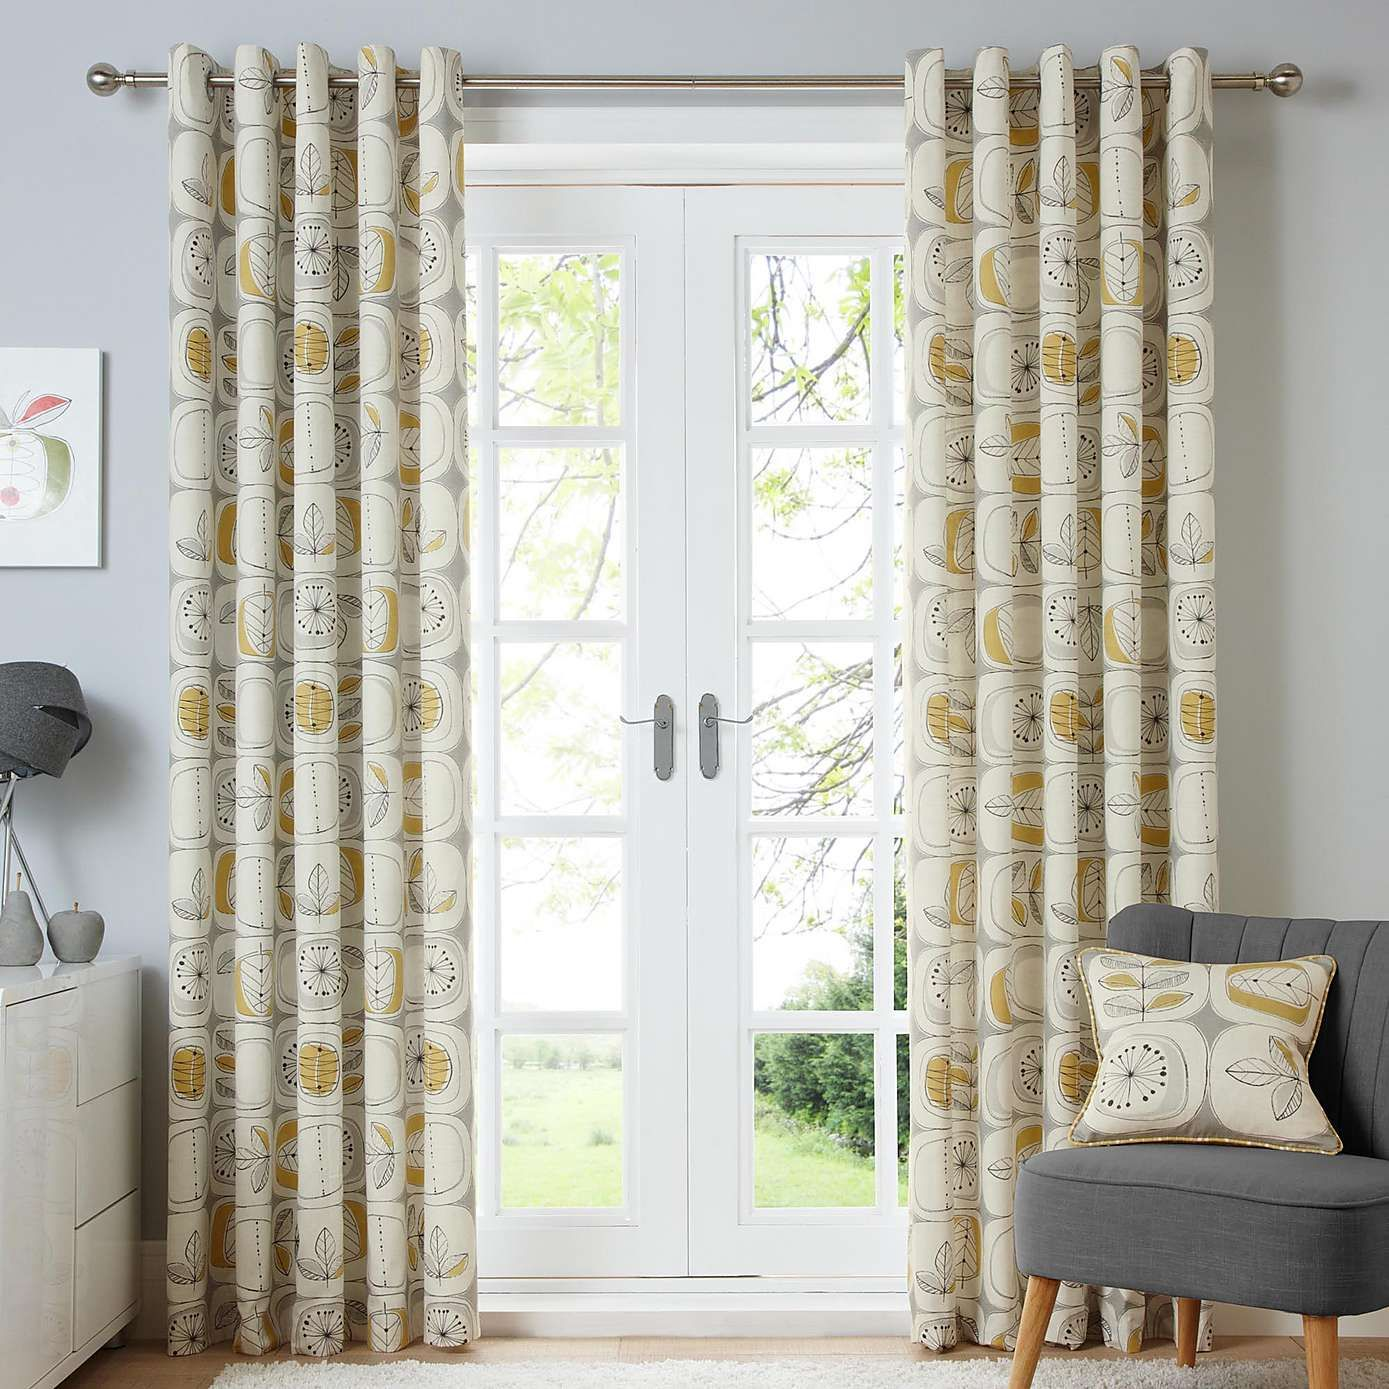 Modern Nature Ochre Lined Eyelet Curtains | Dunelm | Spare double ... for Double Eyelet Curtains  287fsj